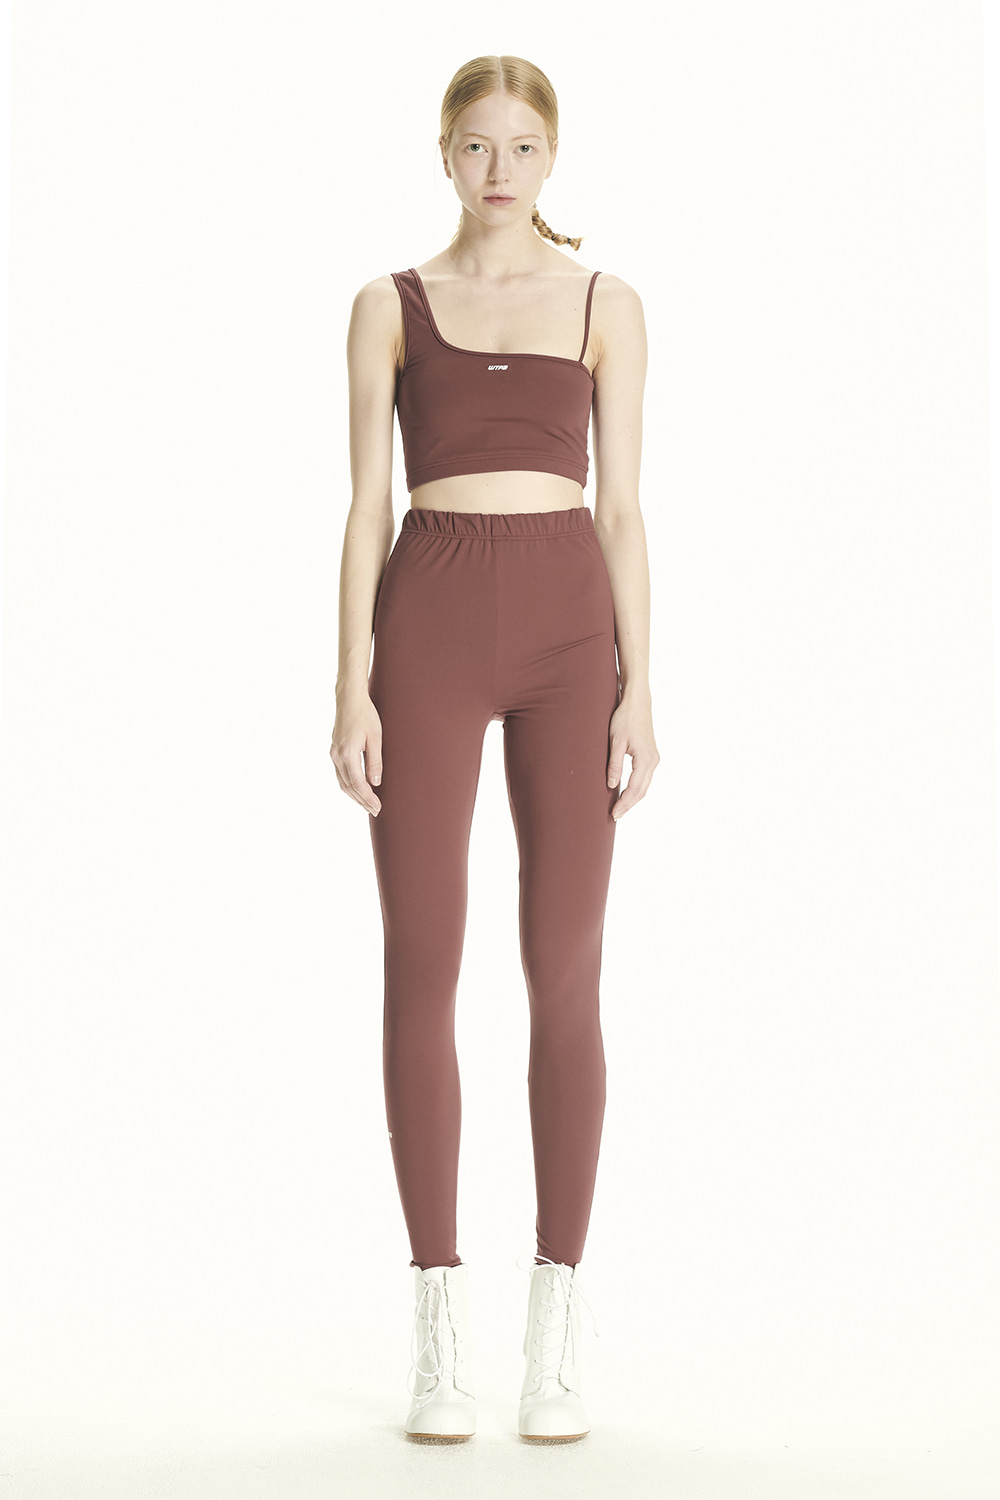 PS21 WTPB LOGO WINE LEGGINGS